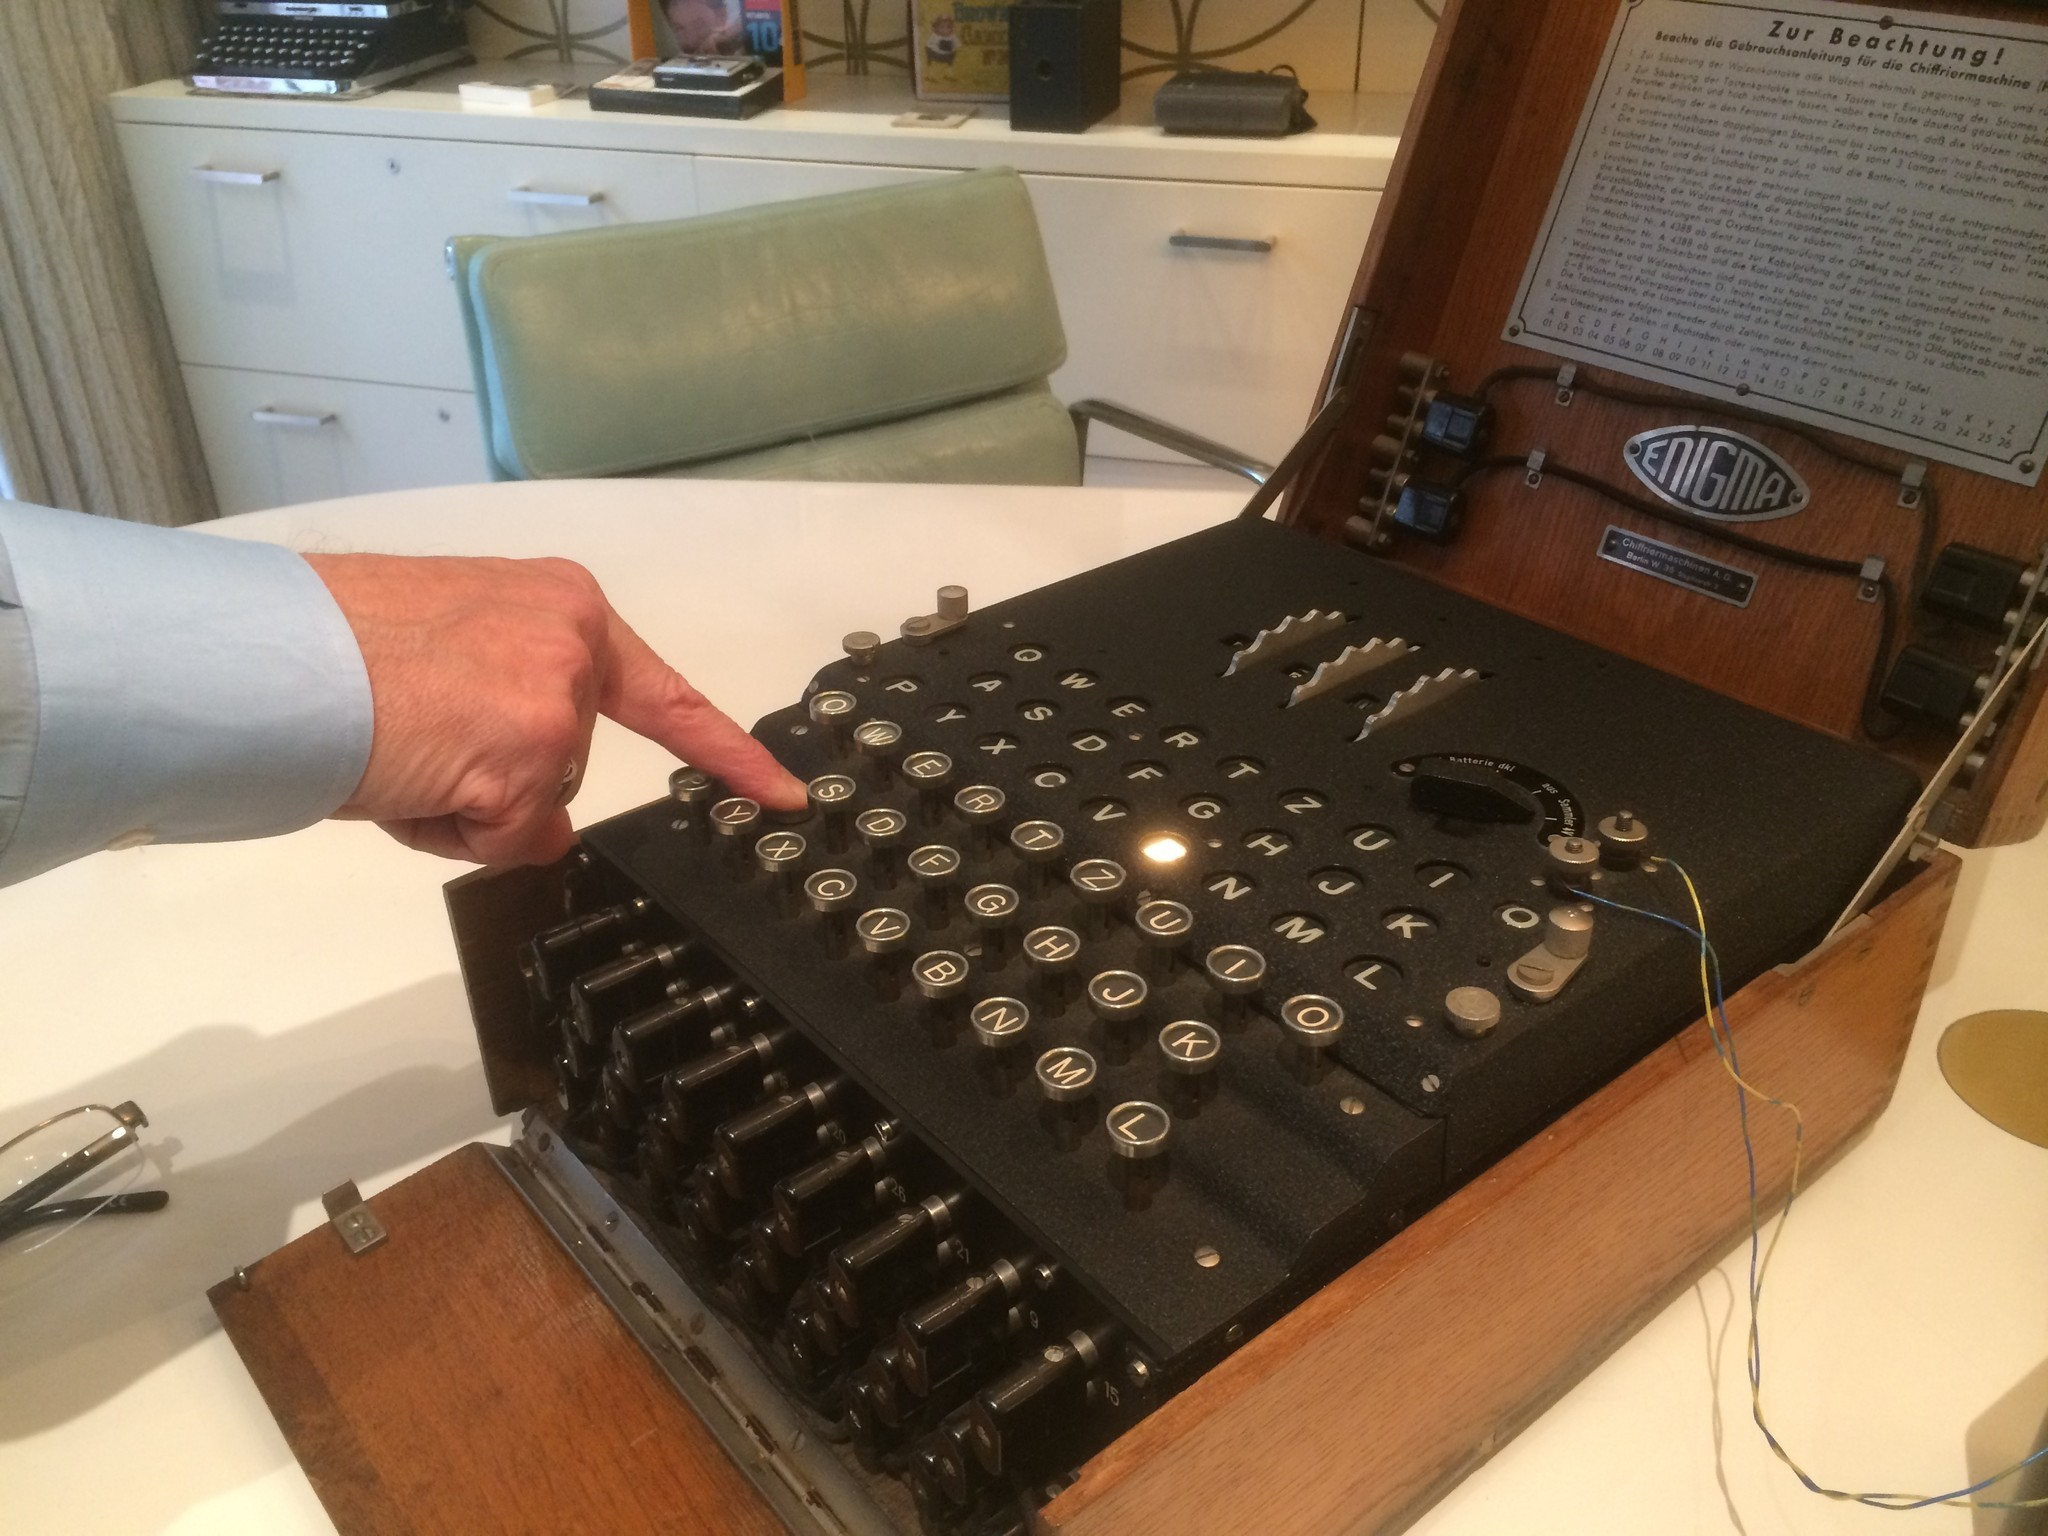 ENIGMA Technology and the History of Computers